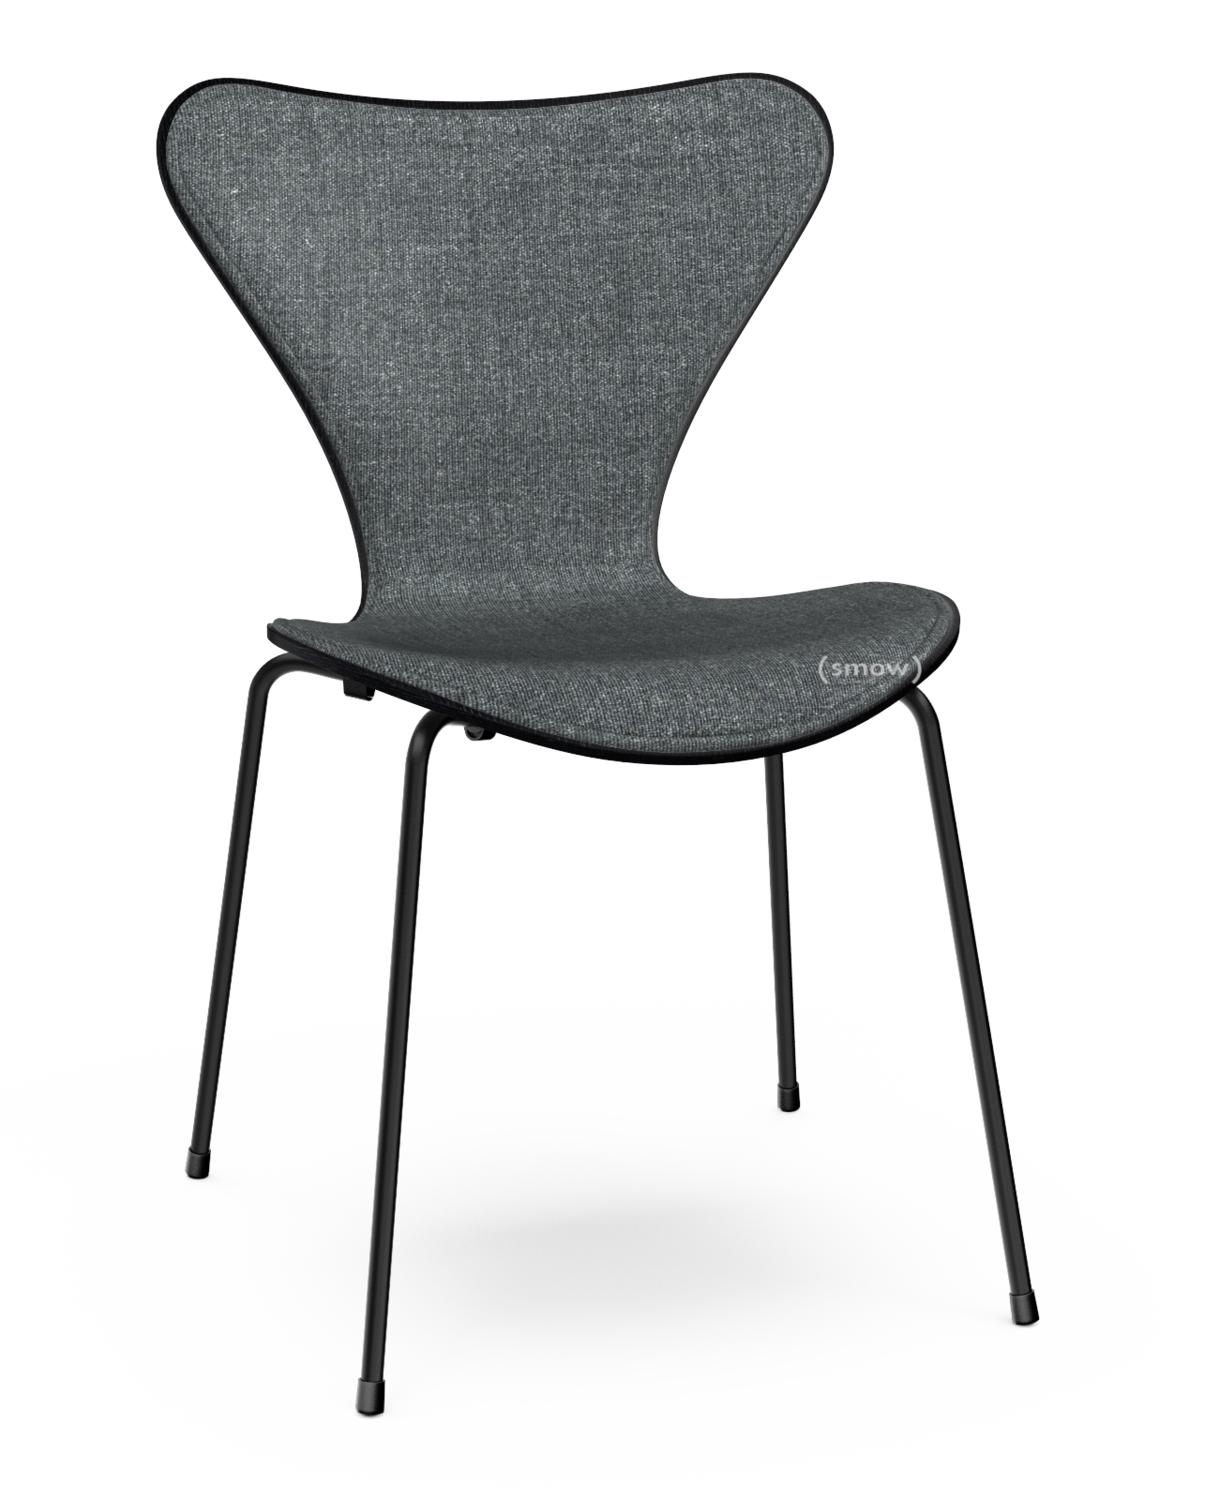 fritz hansen series 7 chair front upholstered by arne. Black Bedroom Furniture Sets. Home Design Ideas